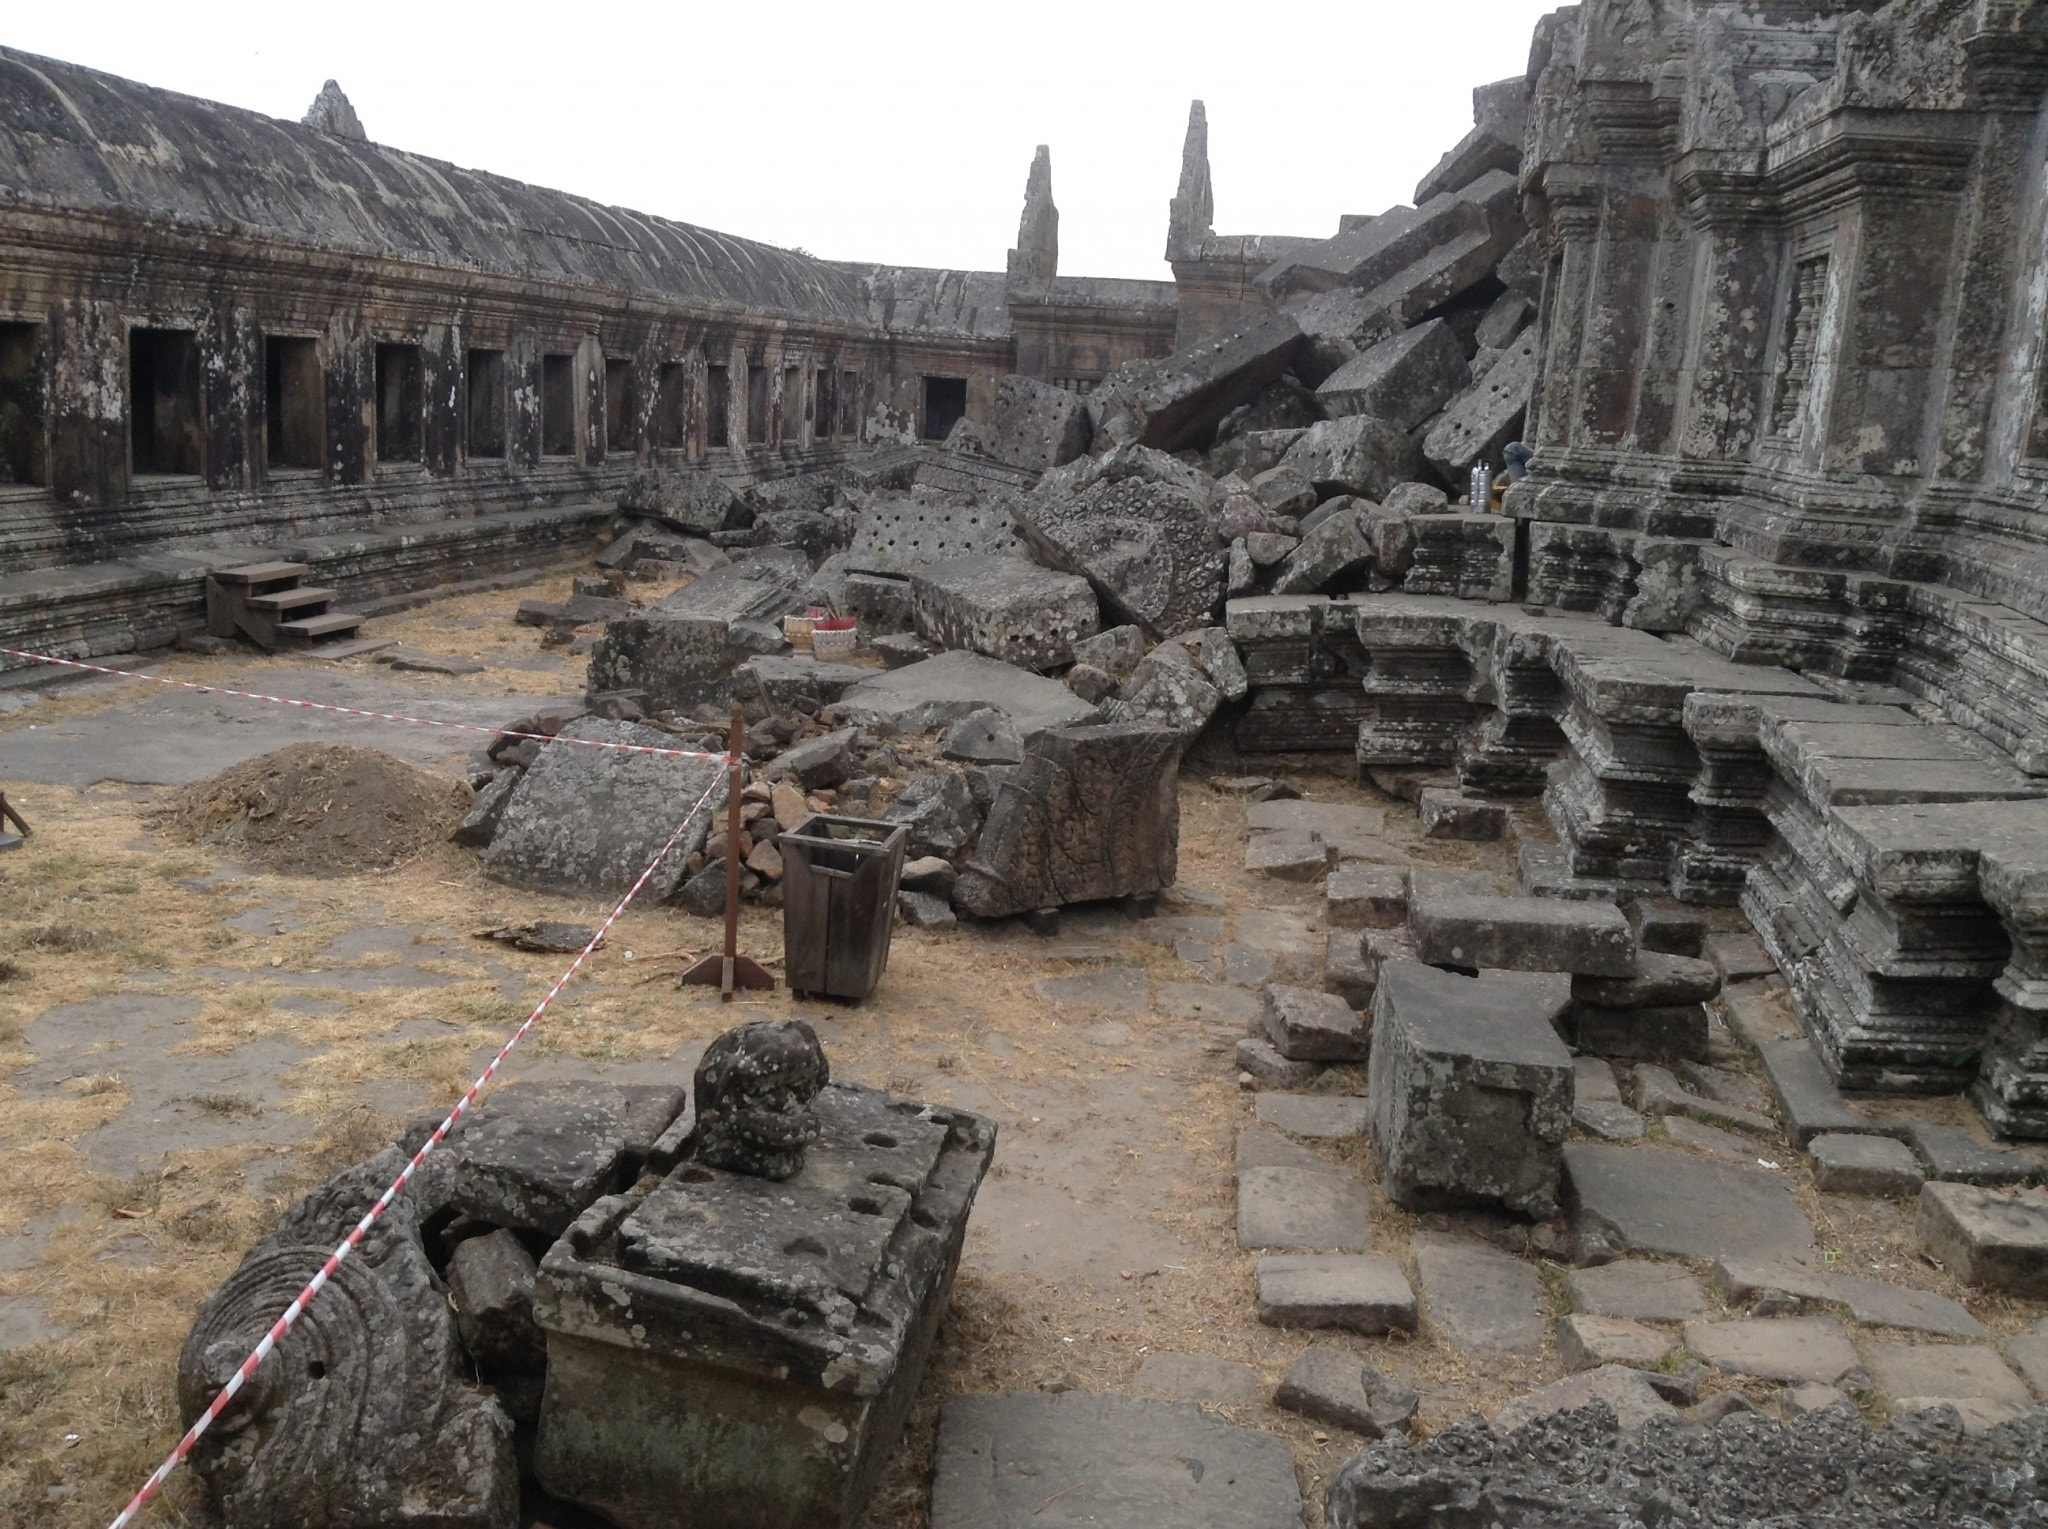 CAMBODIA – The Preah Vihear Temple is a must do day trip from Siem Reap